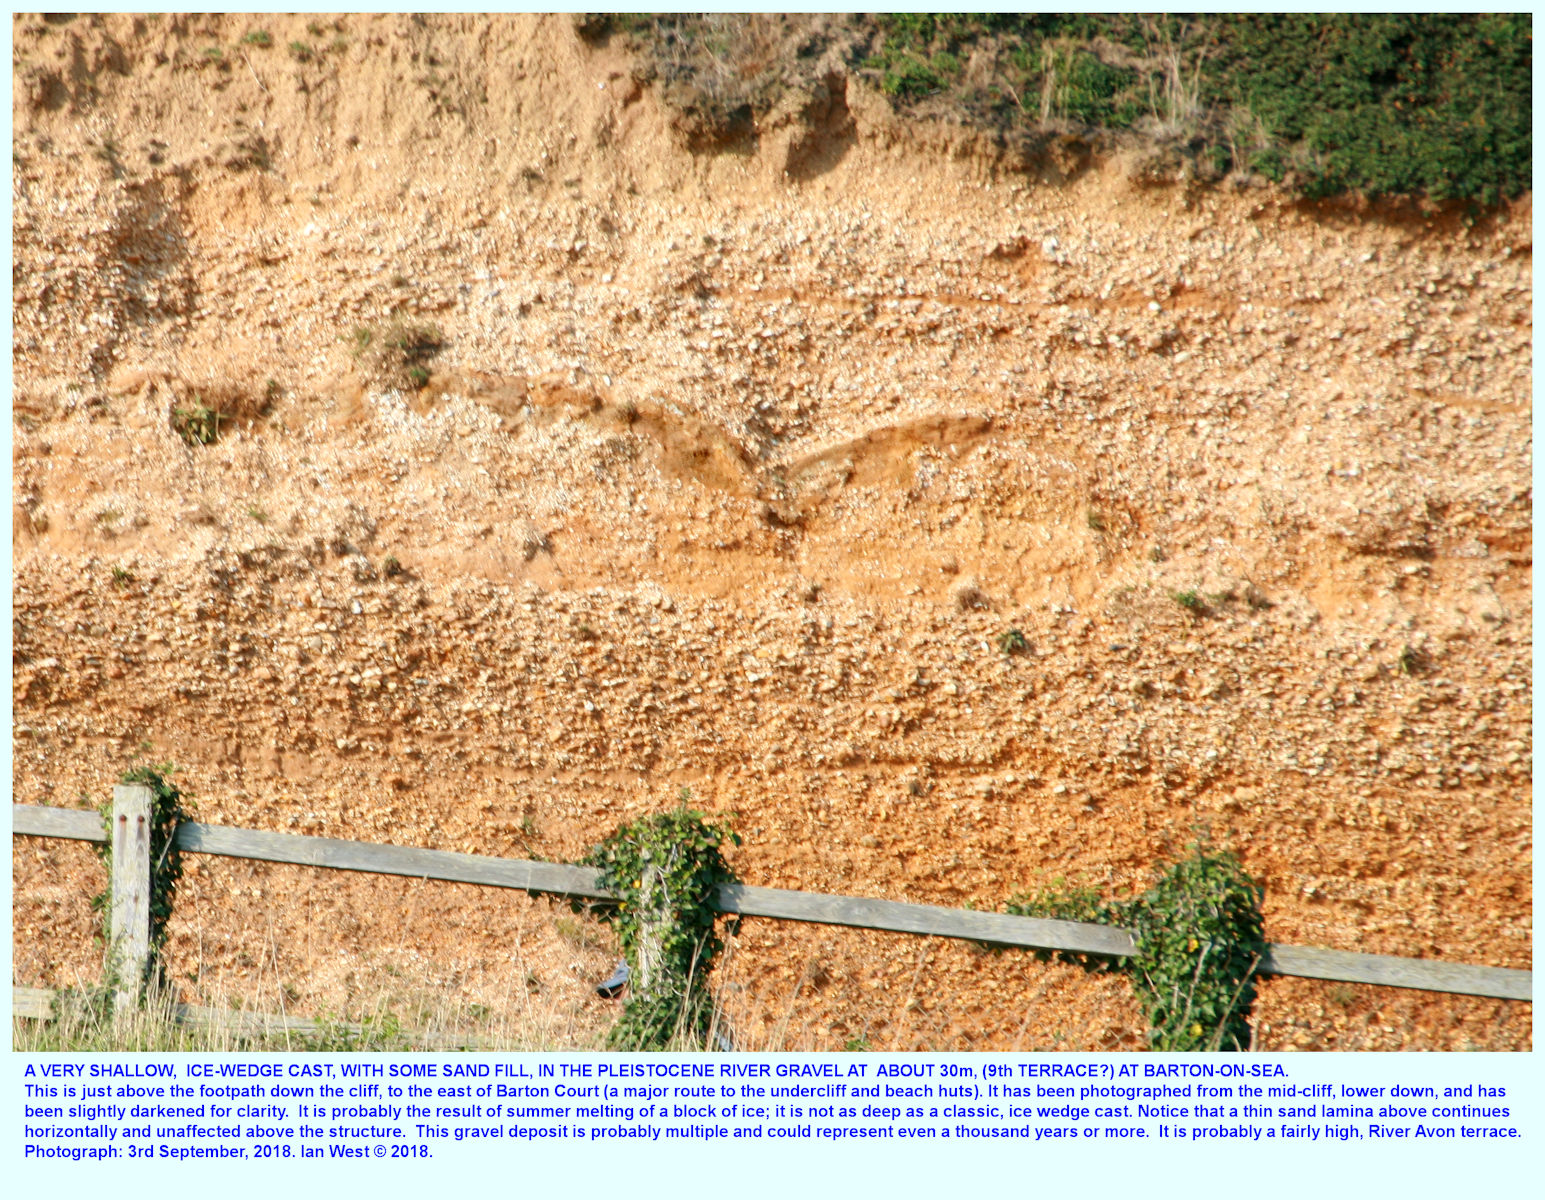 Evidence of a small ice-wedge in the Pleistocene gravel, of Terrace 9, at the cliff path down, just east of Barton Court, Barton-on-Sea with brickearth above